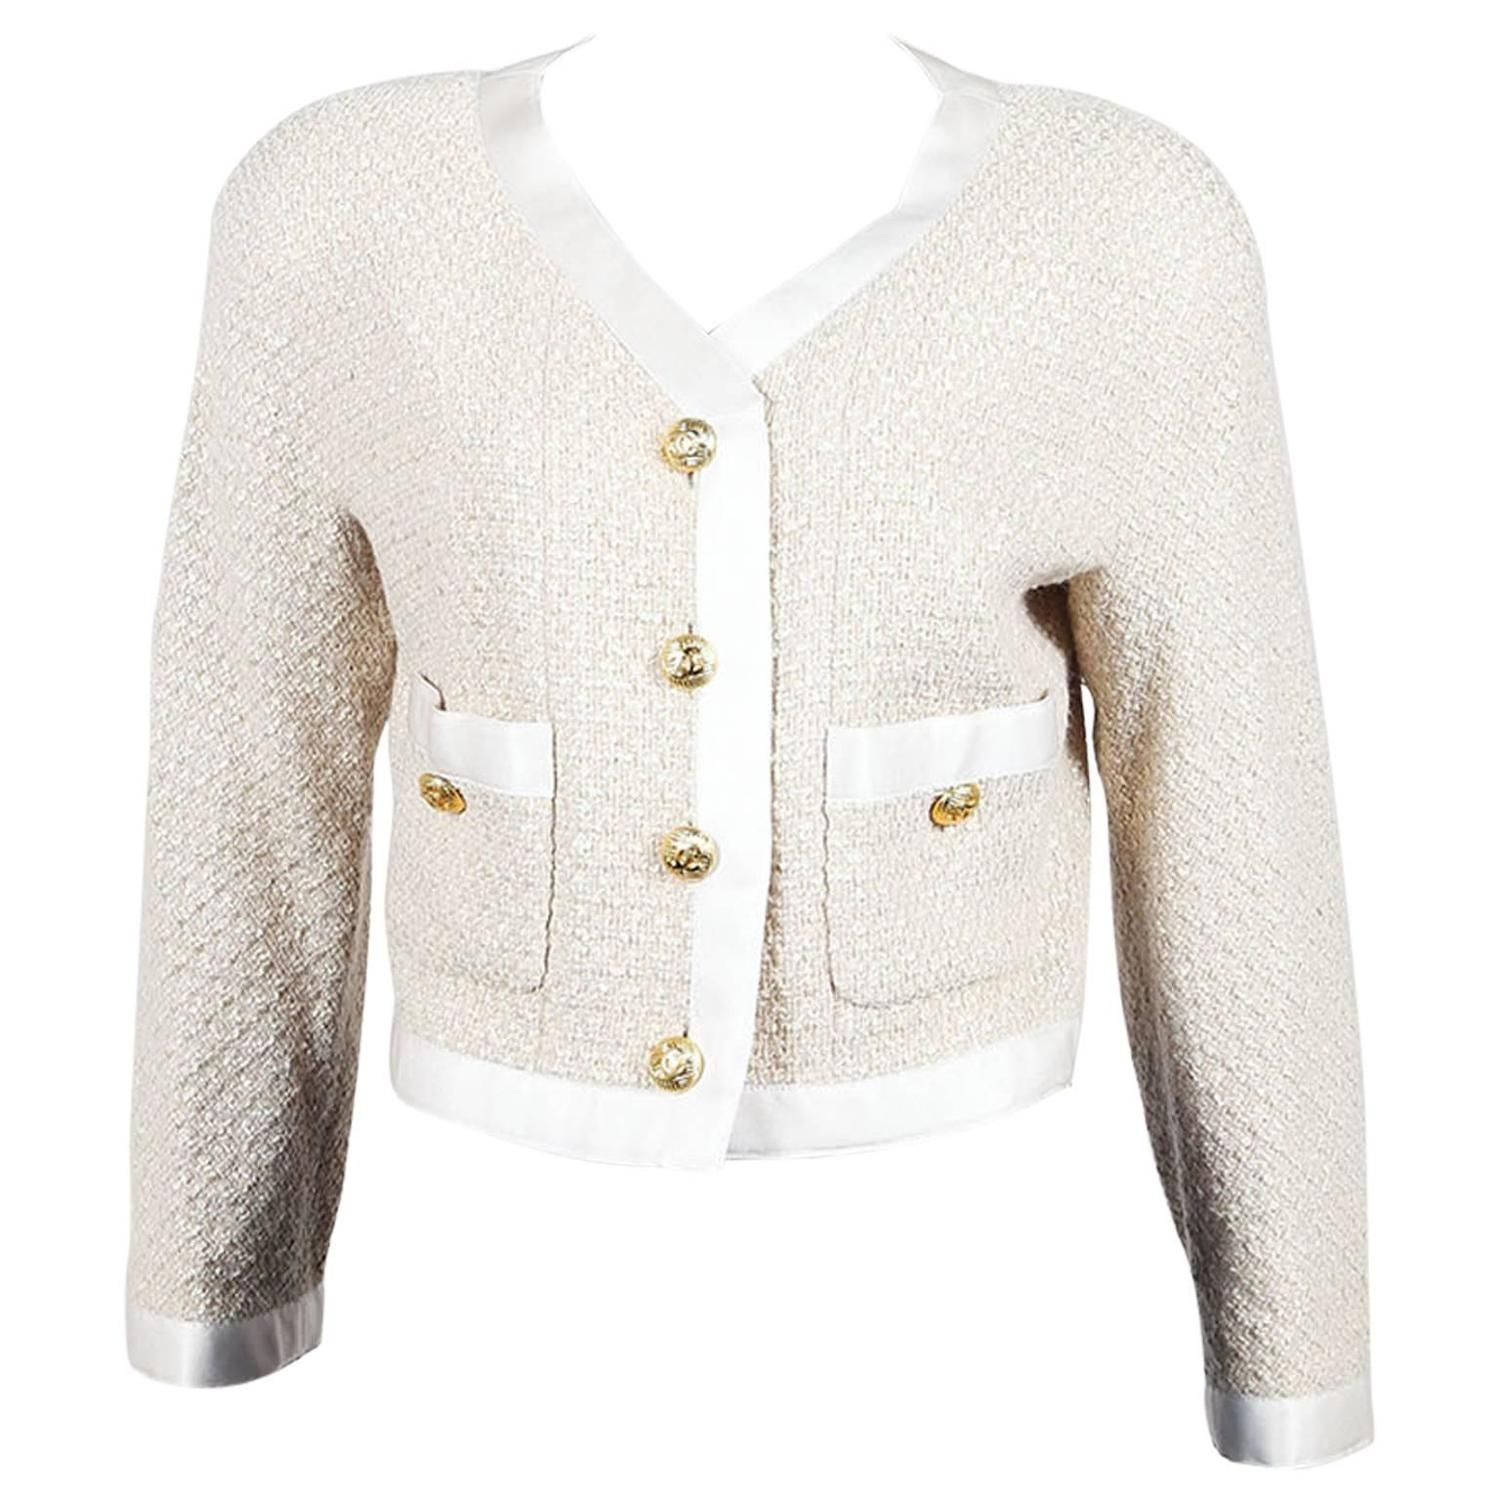 Vintage Chanel Beige Wool Silk Textured Knit 'CC' Button Cropped Jacket 1990